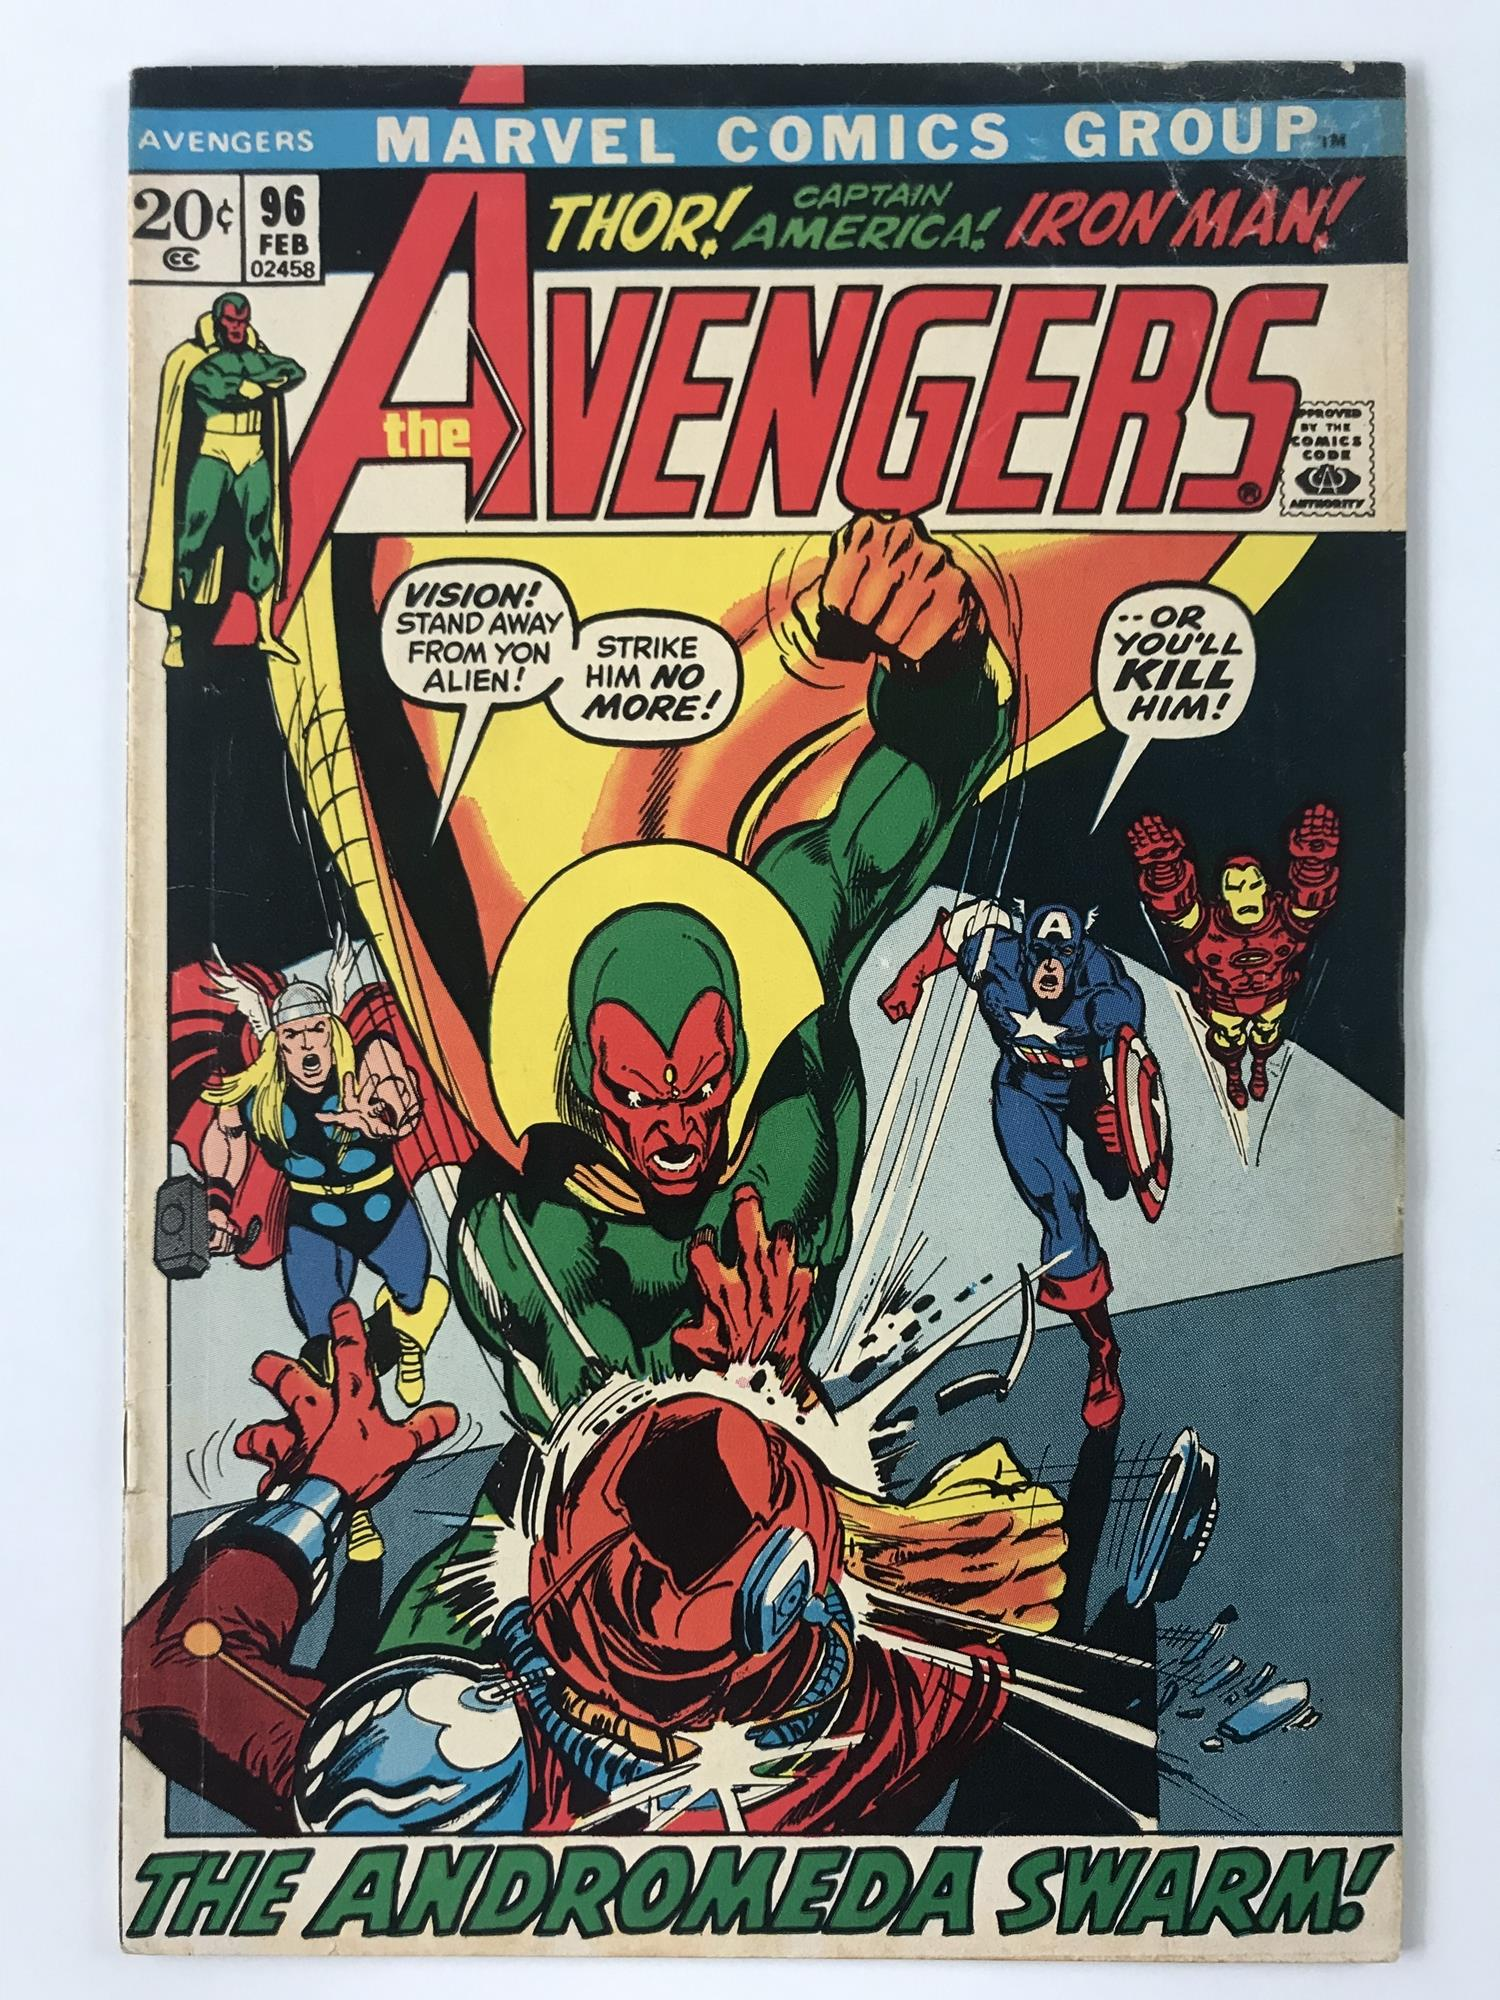 Lot 47 - AVENGERS # 96 (1972 - MARVEL - Cents Copy) - The Kree-Skrull War storyline continues + Annihilus and